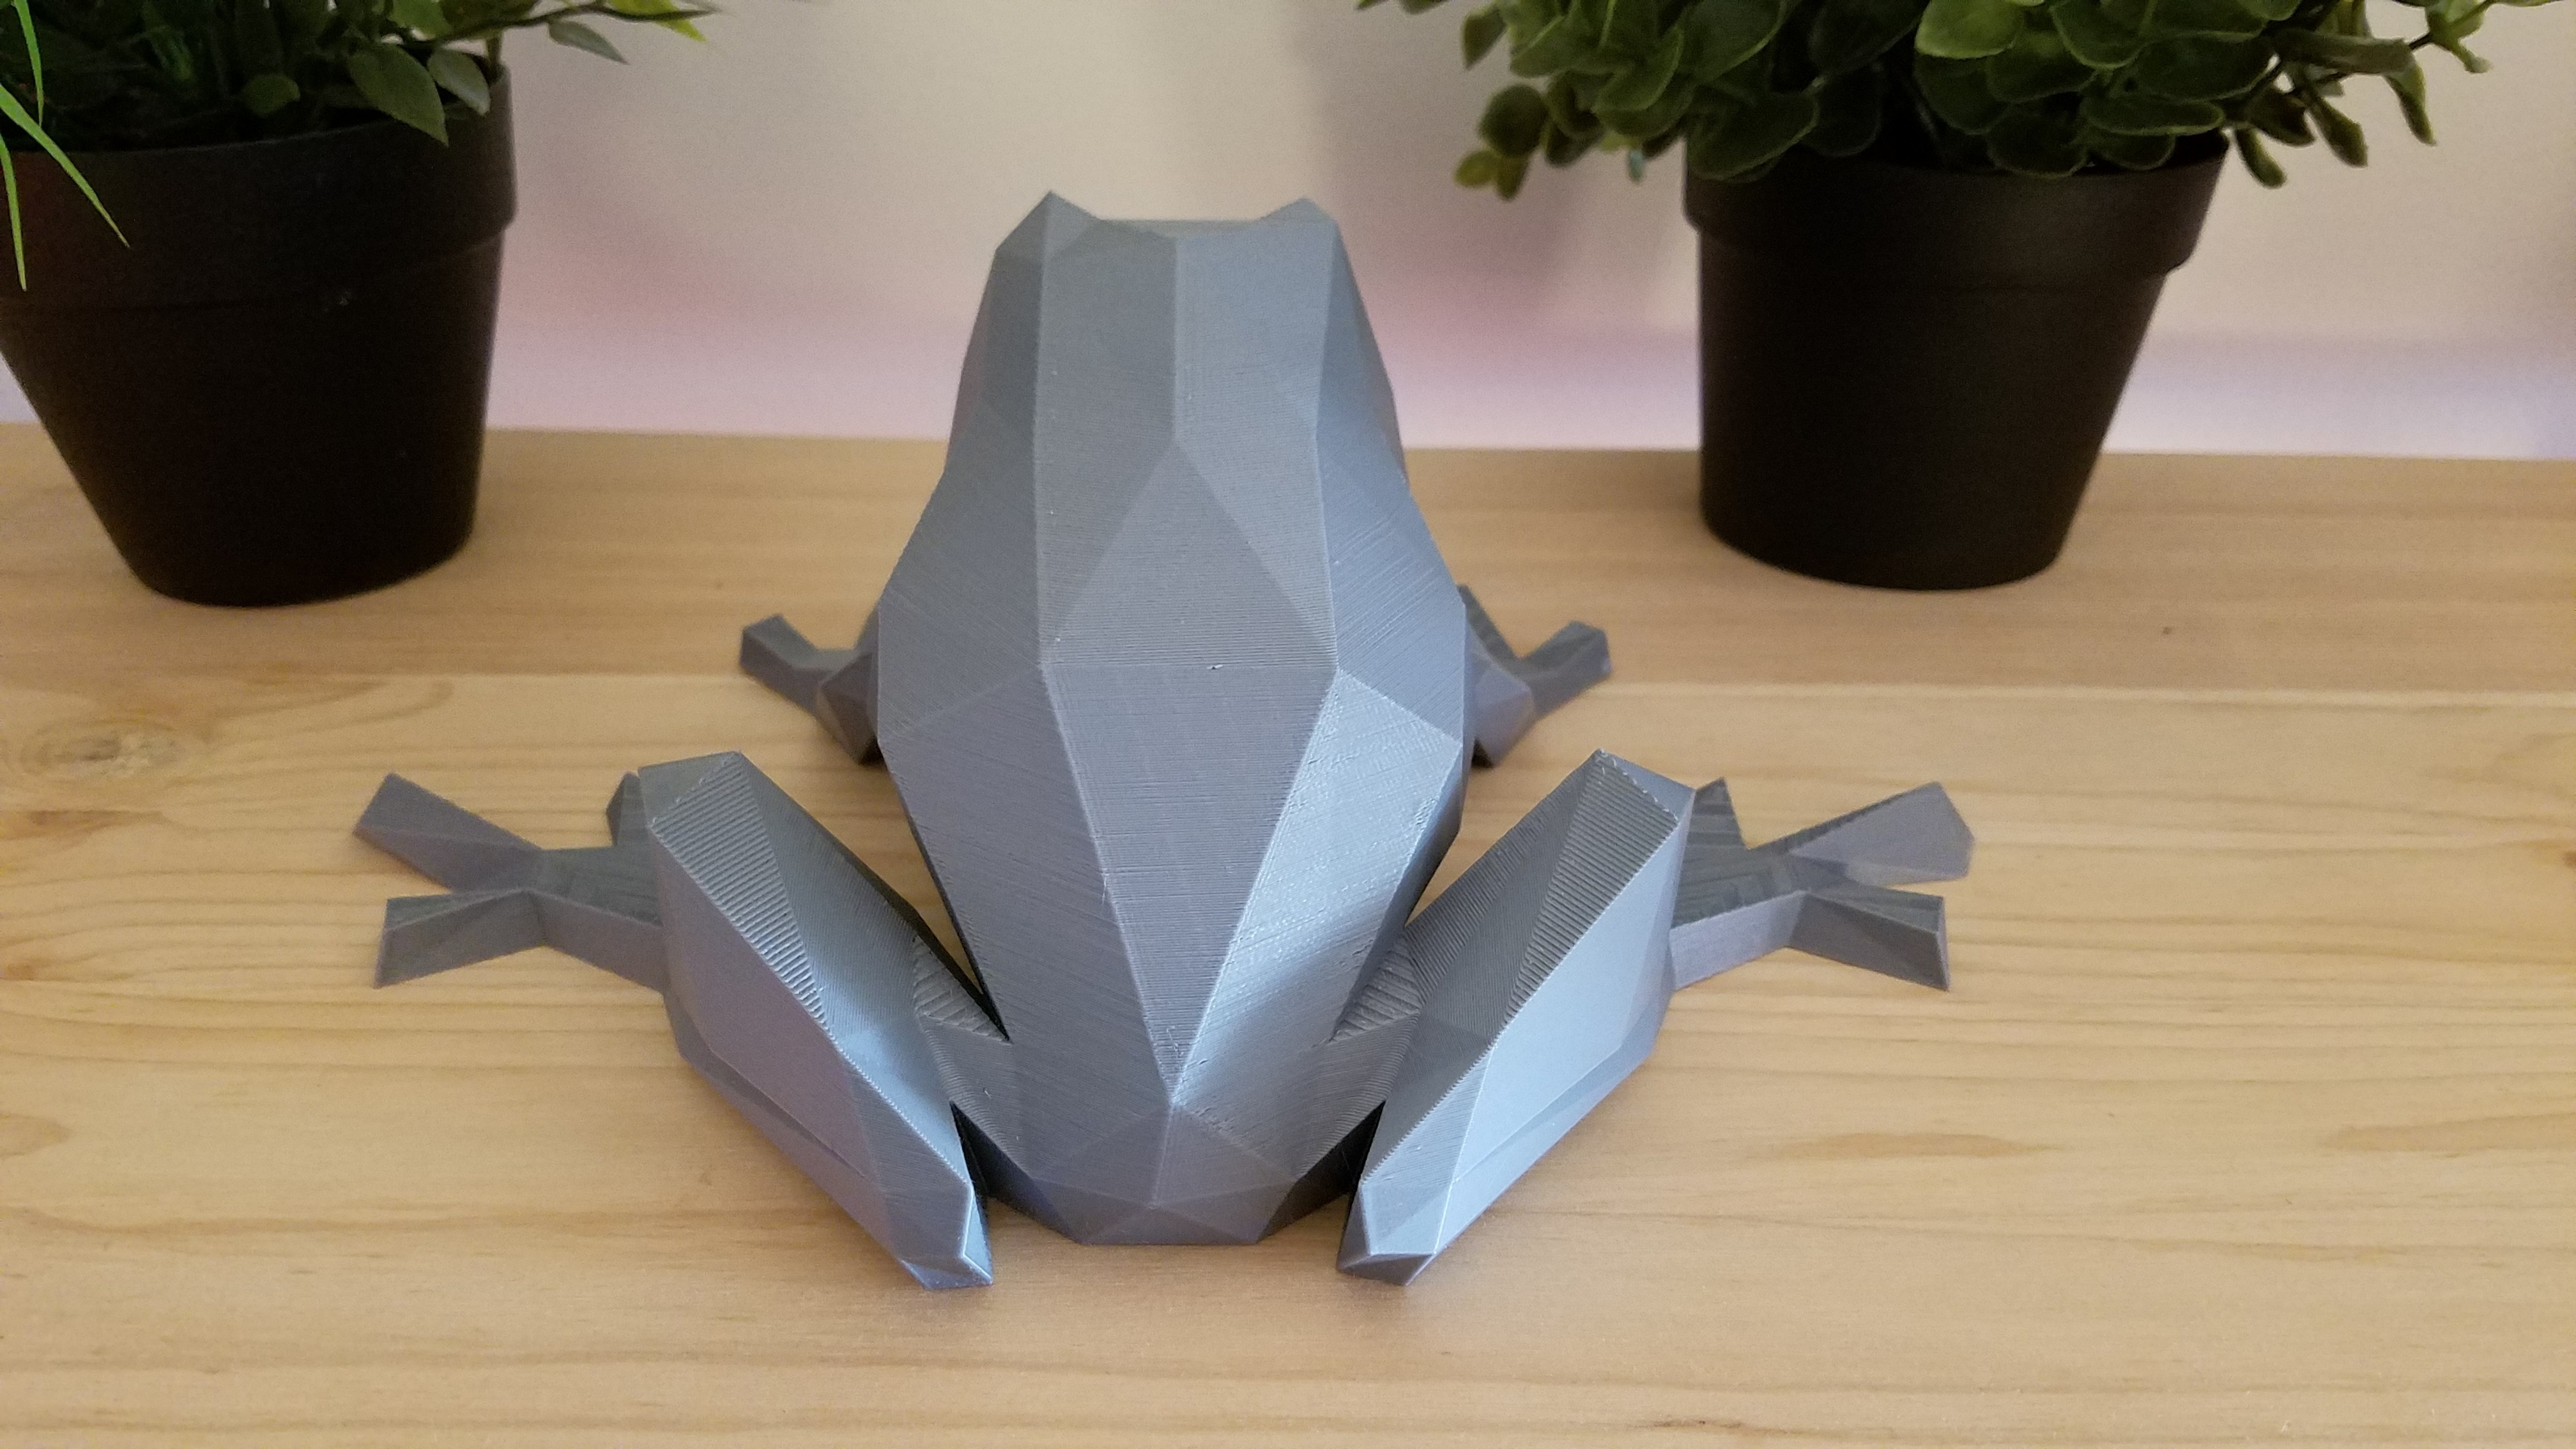 3D Printed Low-Poly Frog by DominimaDesign | Pinshape